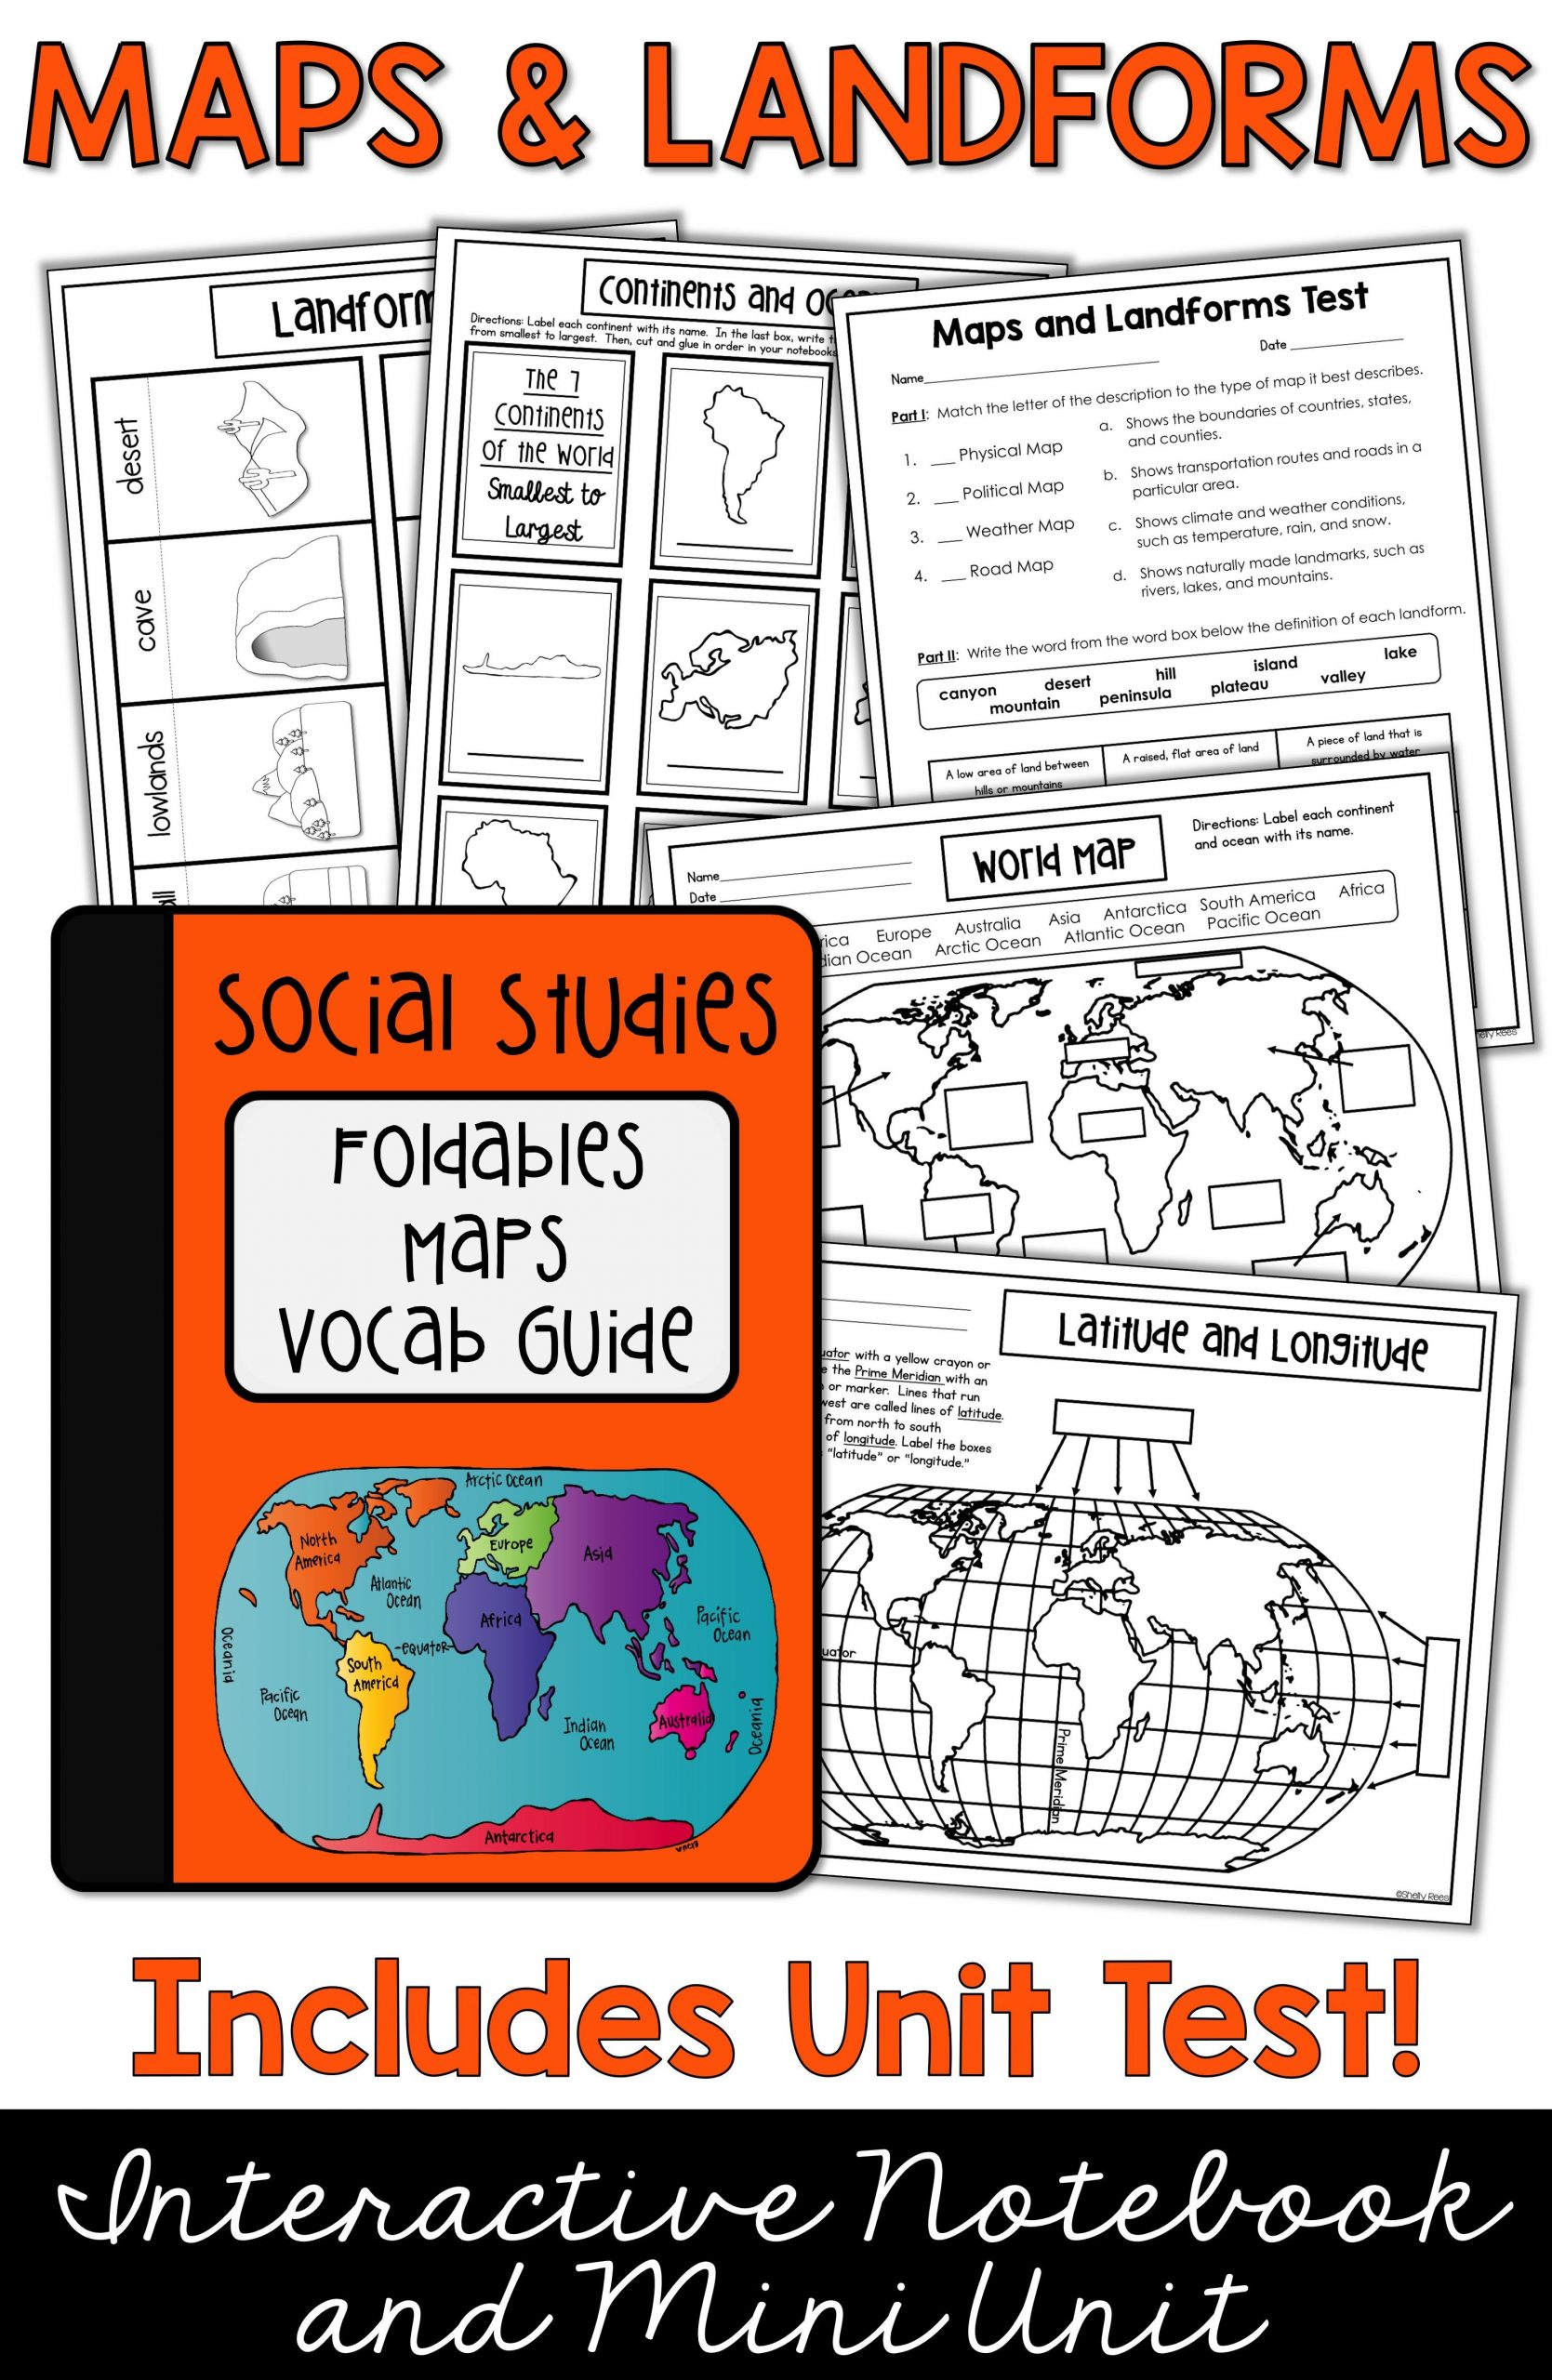 Label Continents and Oceans Printable Maps Continents and Oceans Landforms Map Skills